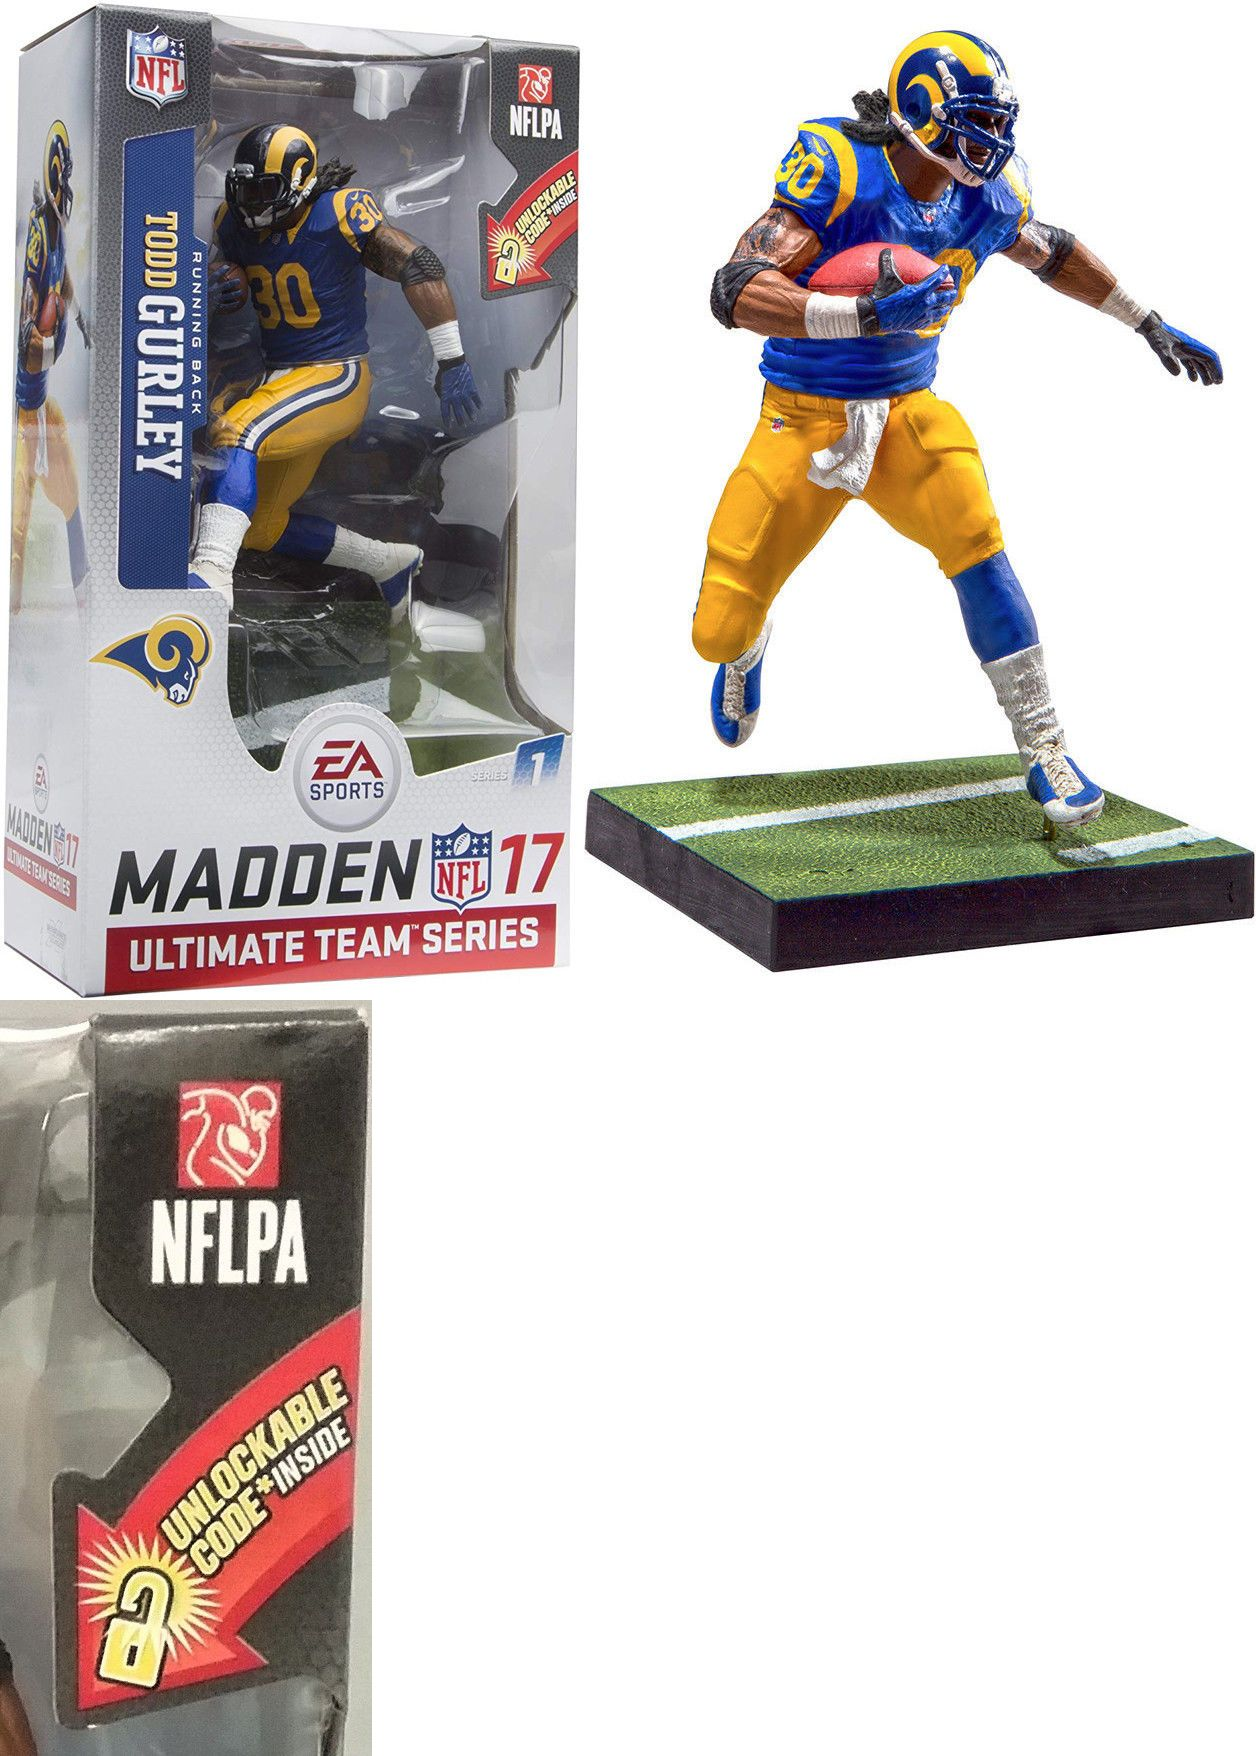 Sports 754 Mip Mcfarlane Toys Ea Sports Madden Nfl 17 Ultimate Team Todd Gurley Rams Buy It Now Only 20 99 On Ebay S Madden Nfl Sports Ea Sports Madden